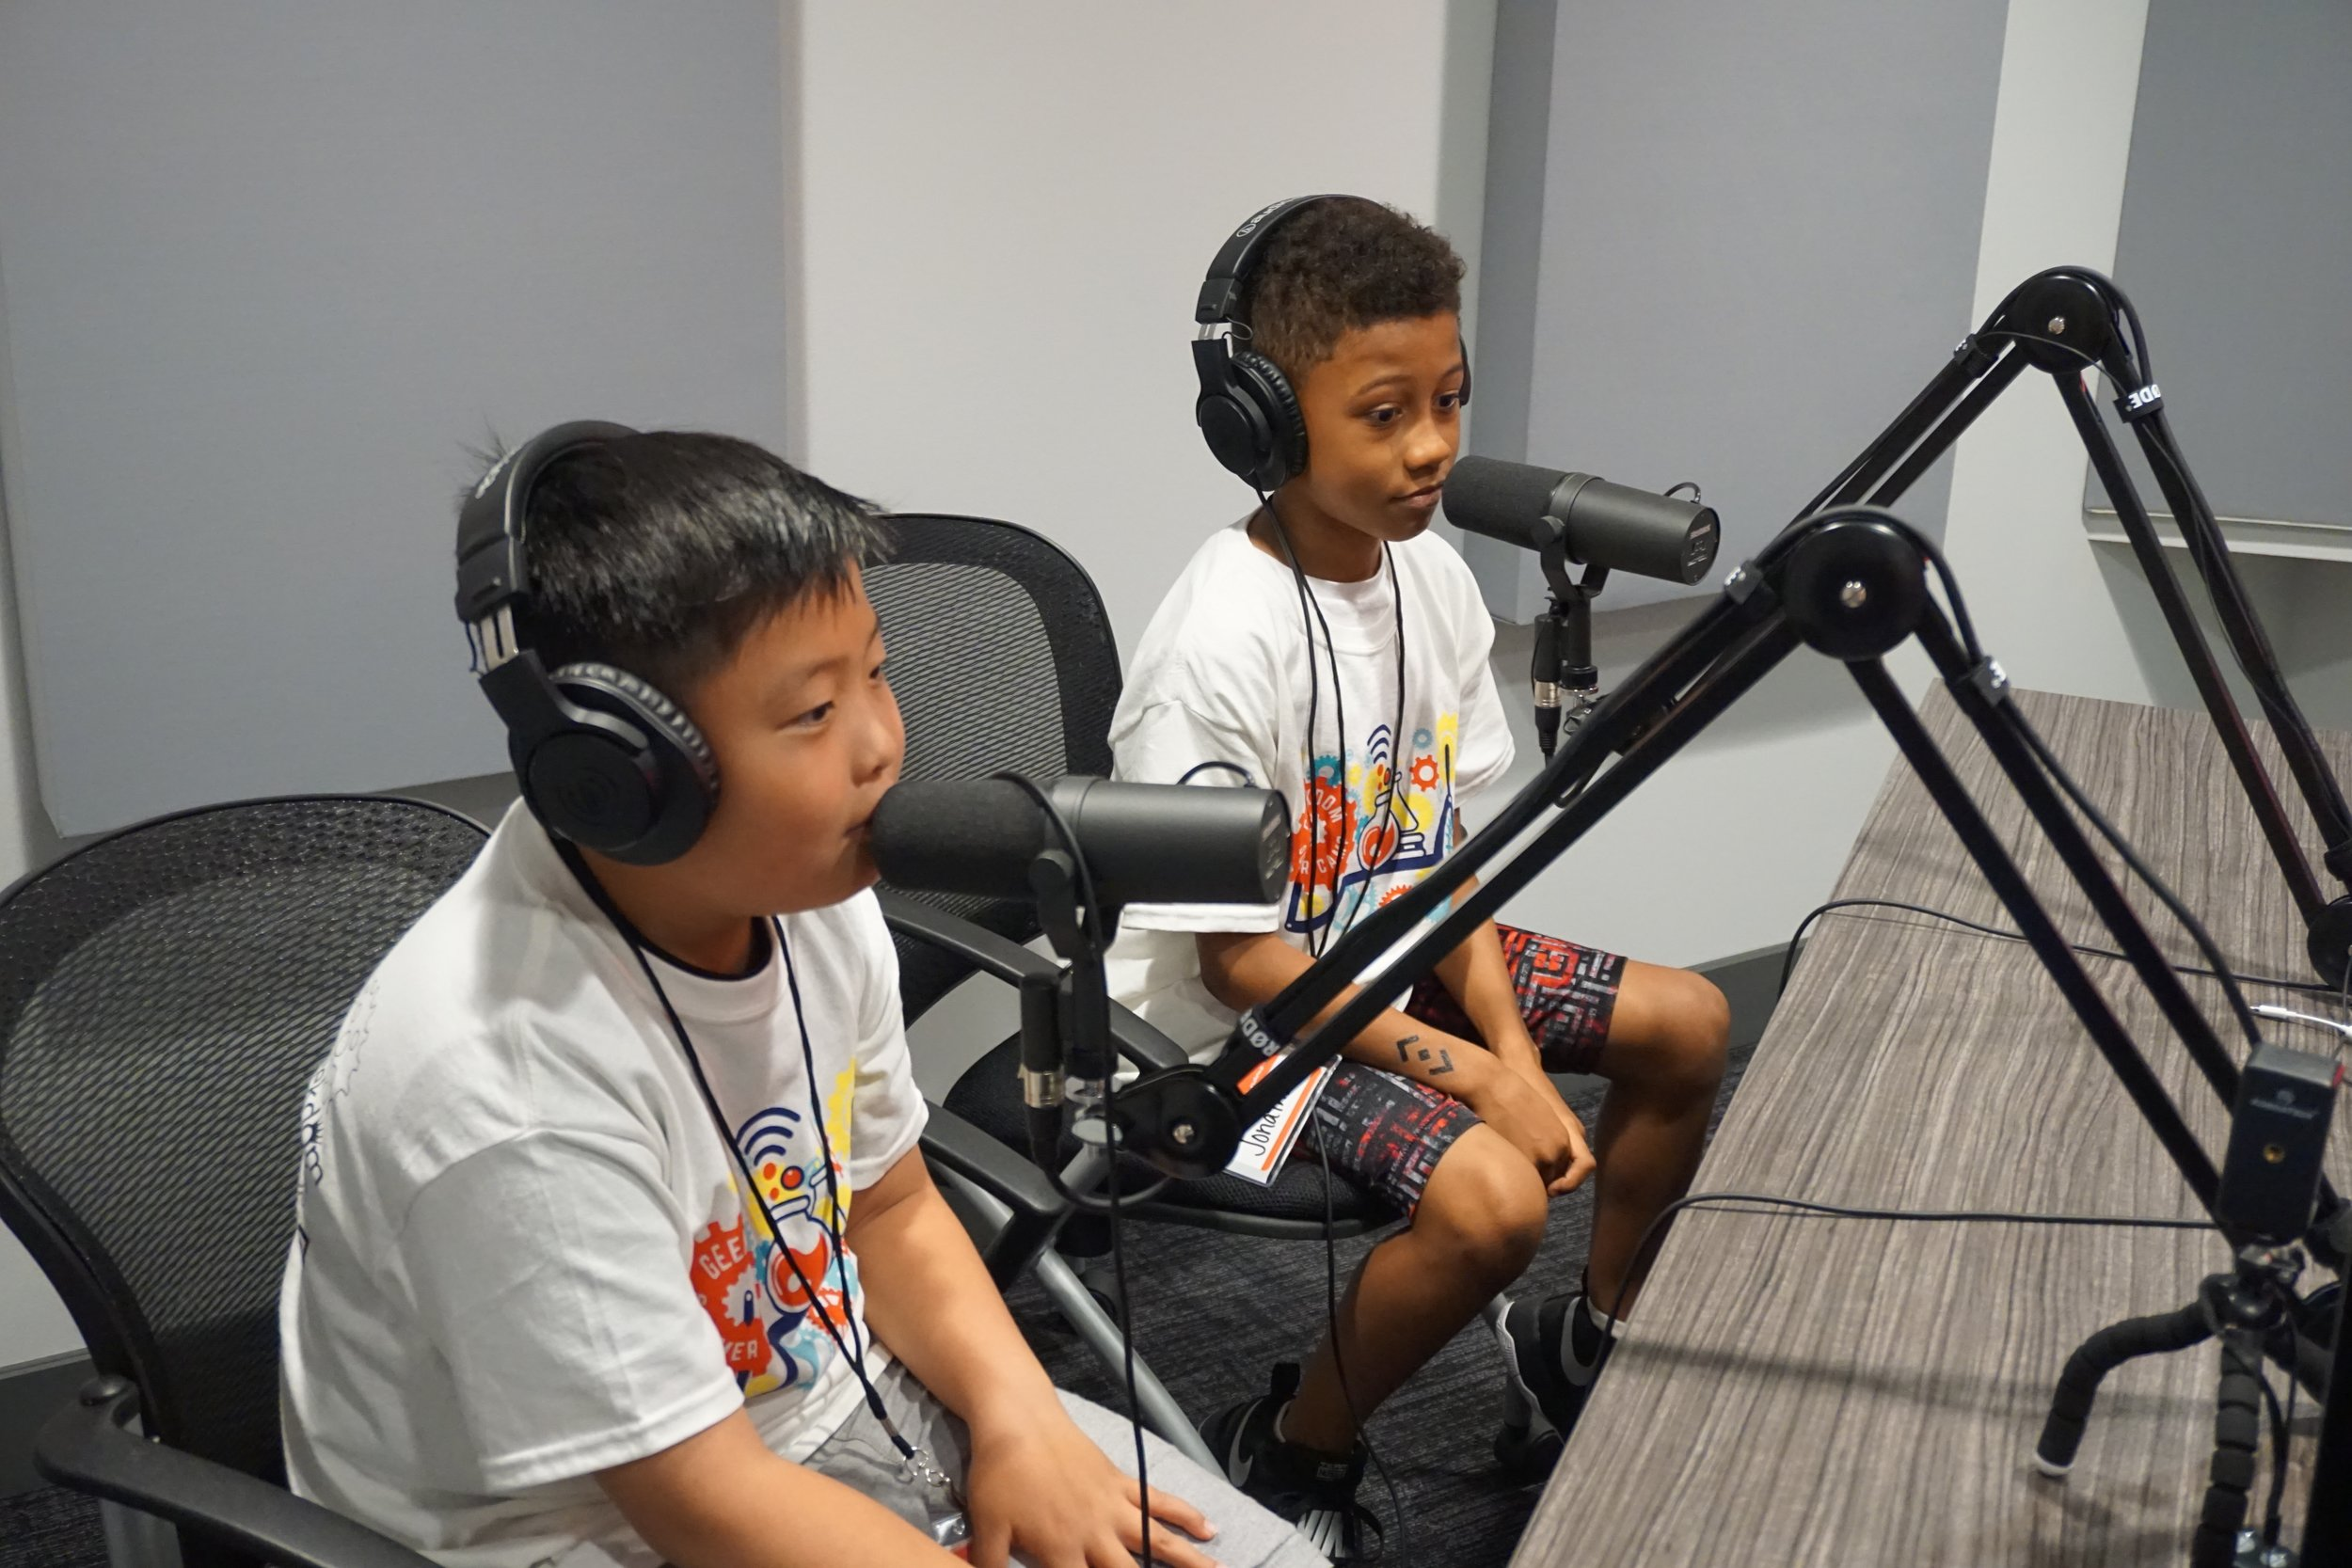 Children check out the podcast studio at Geekdom. (Photo courtesy Geekdom STEAM Summer Camp.)